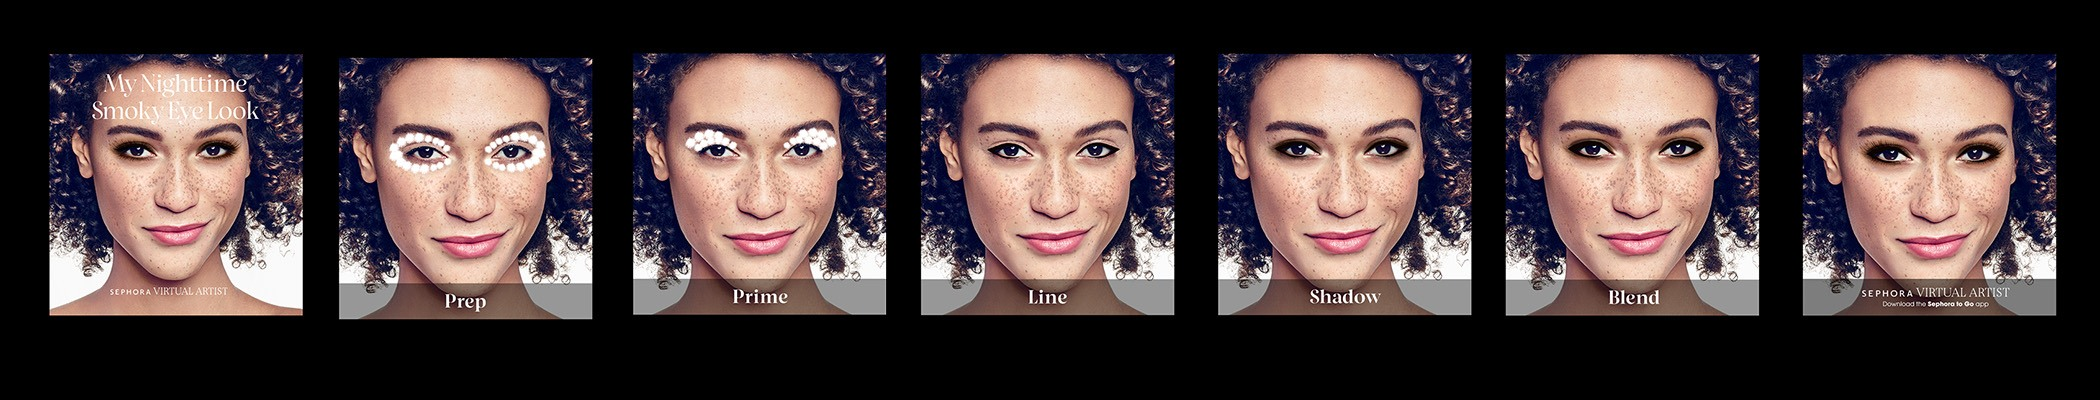 These images represent each step of Sephora's Tutorial for smokey eyes on a user's iPhone. The feature uses augmented reality such that the smokey eye is applied on one's own photo.